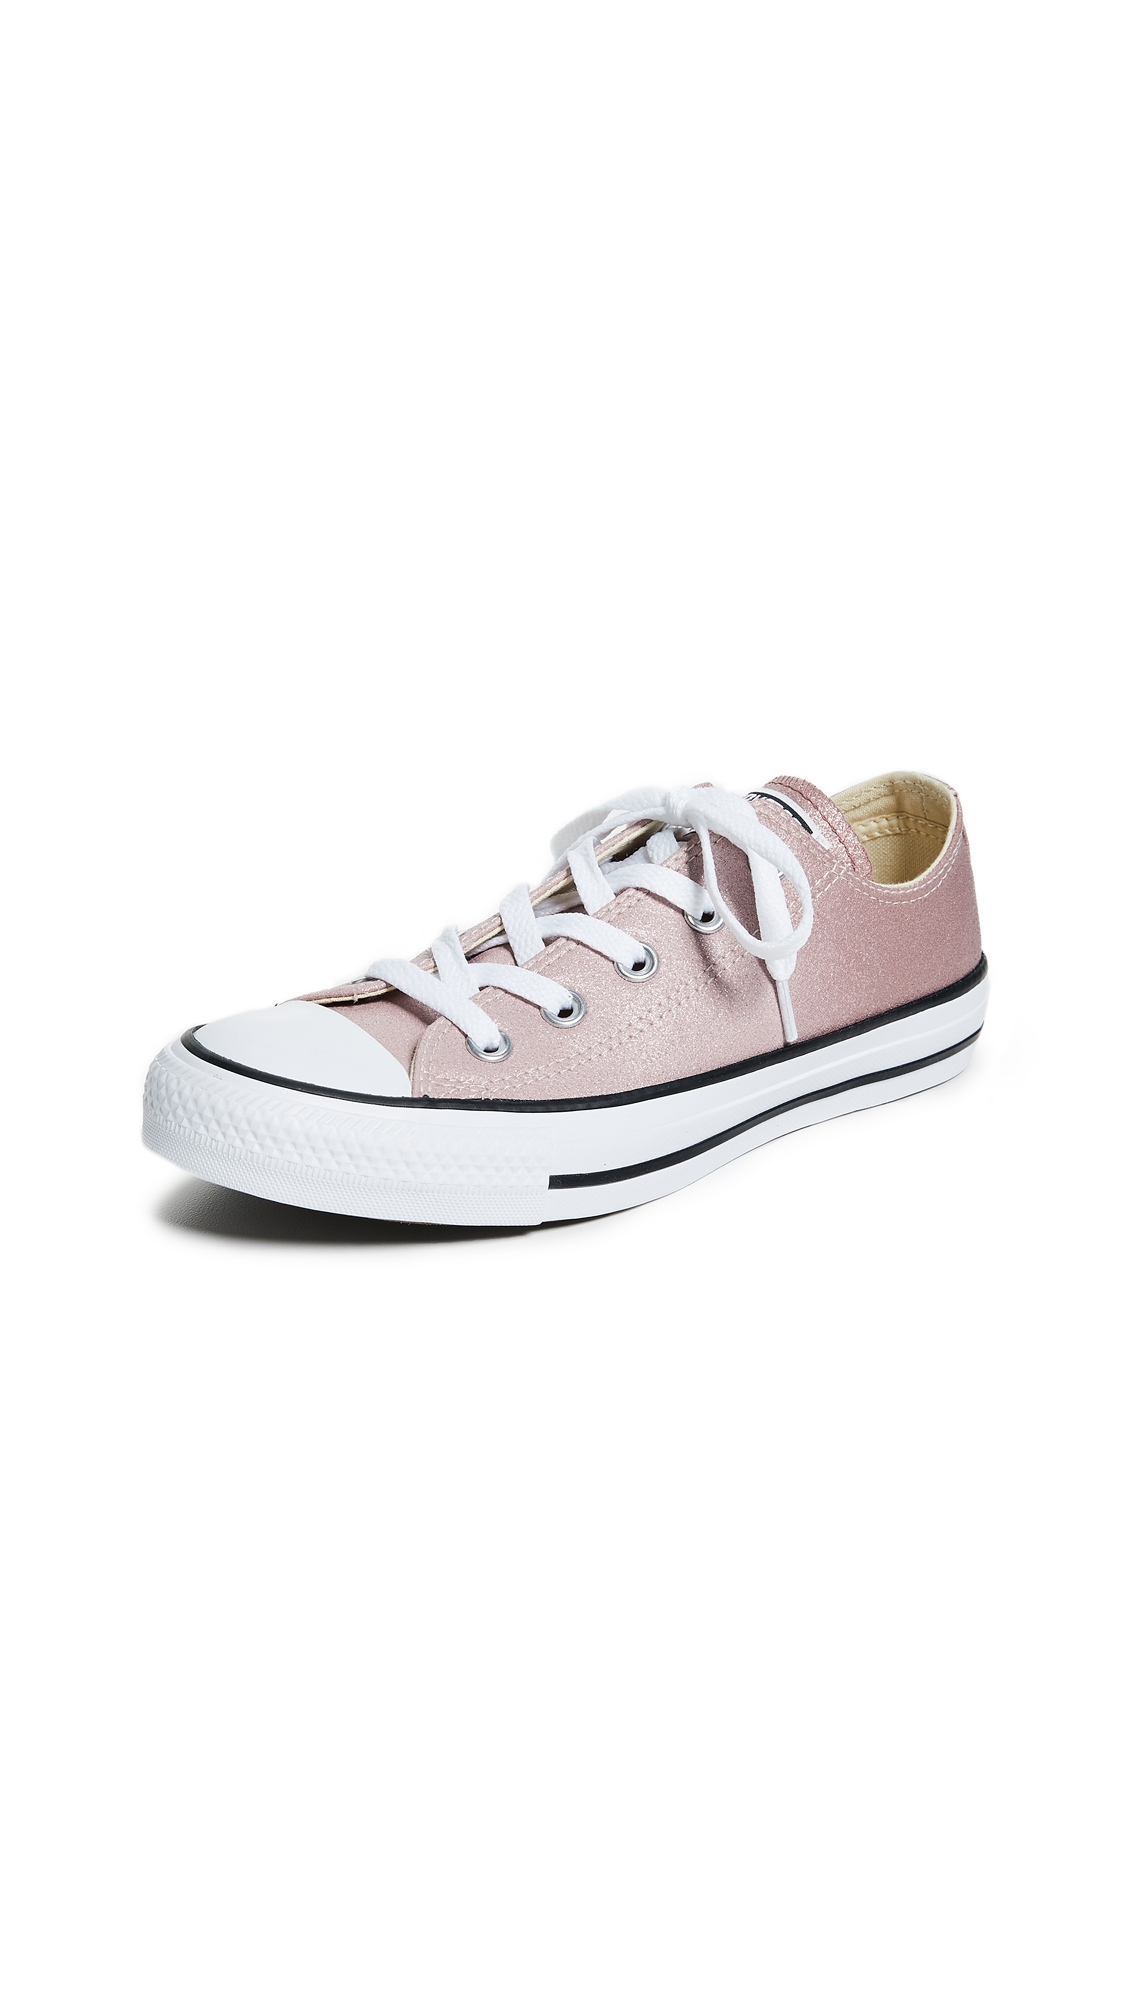 Converse Chuck Taylor All Star OX Sneakers - Particle Beige/Saddle/White